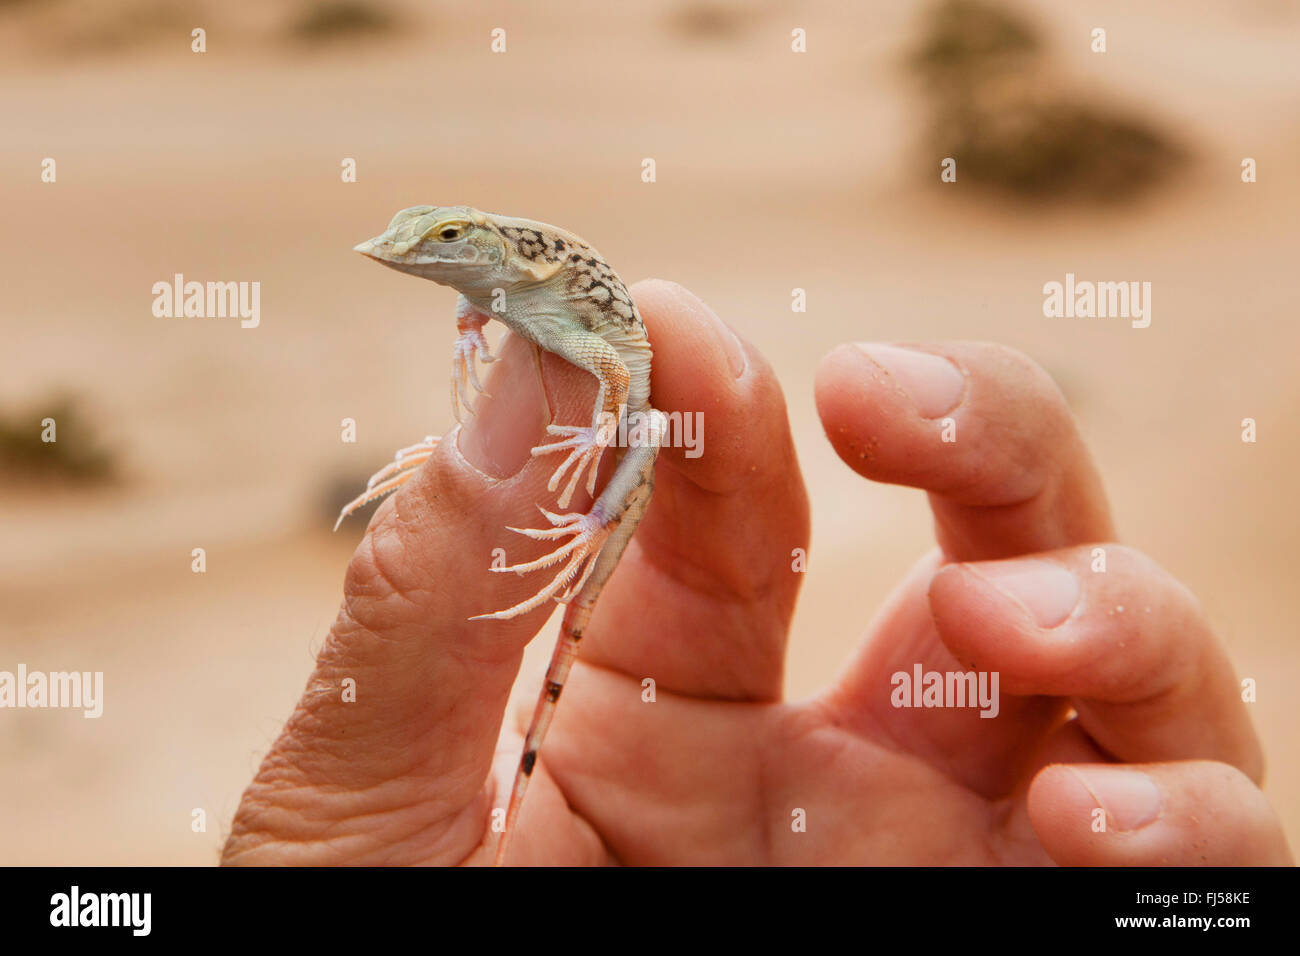 lizard holding in a hand during a desert tour, Namibia, Dorob National Park, Swakopmund Stock Photo